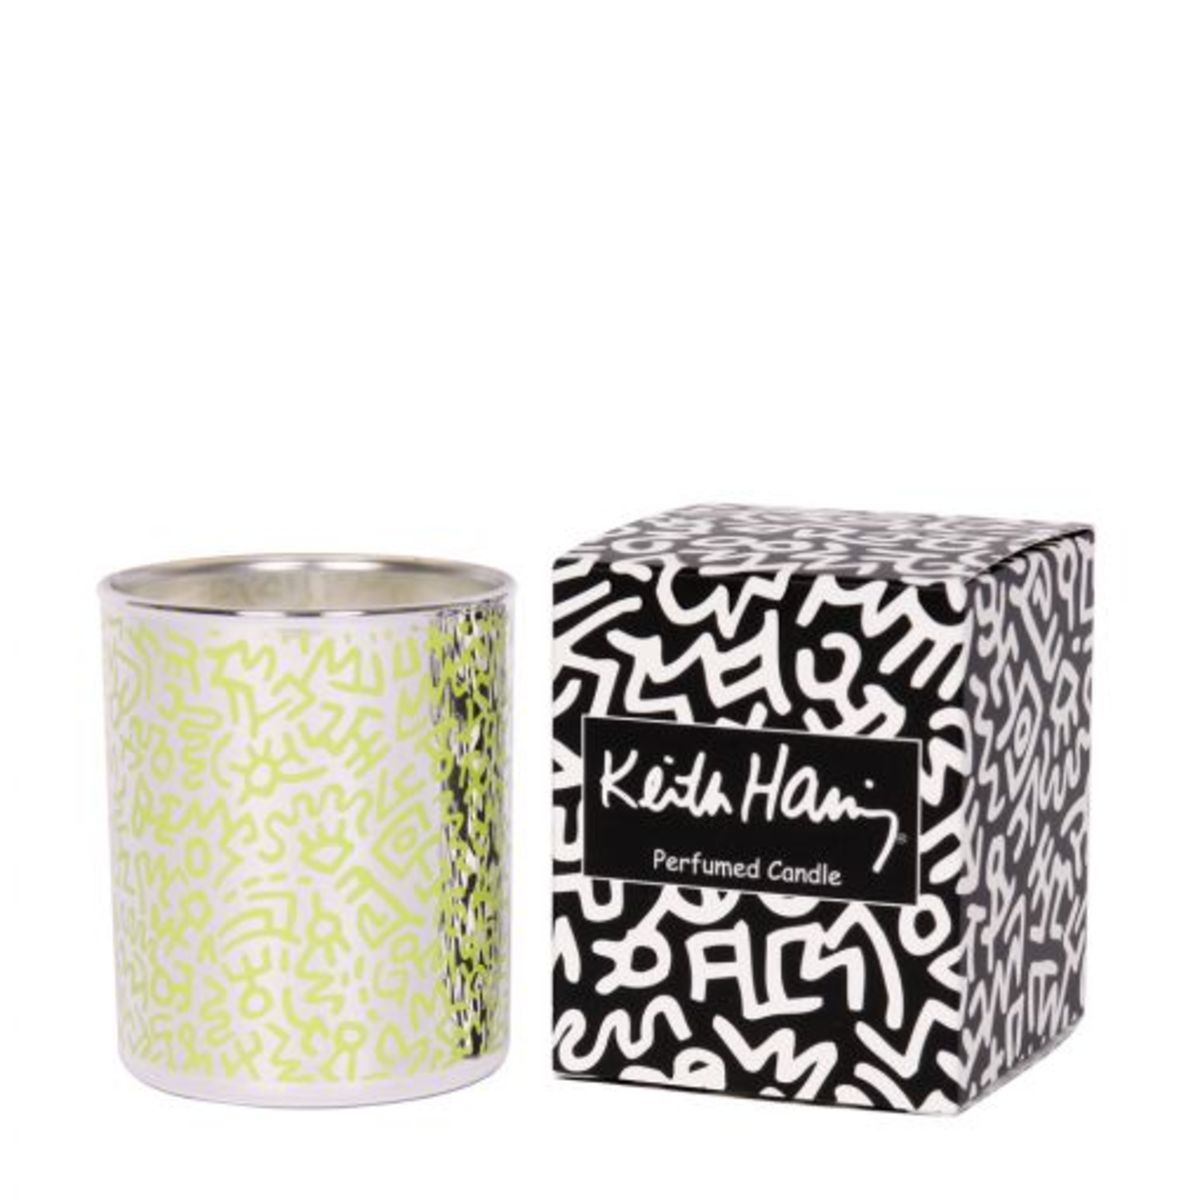 keith_haring_candle_2